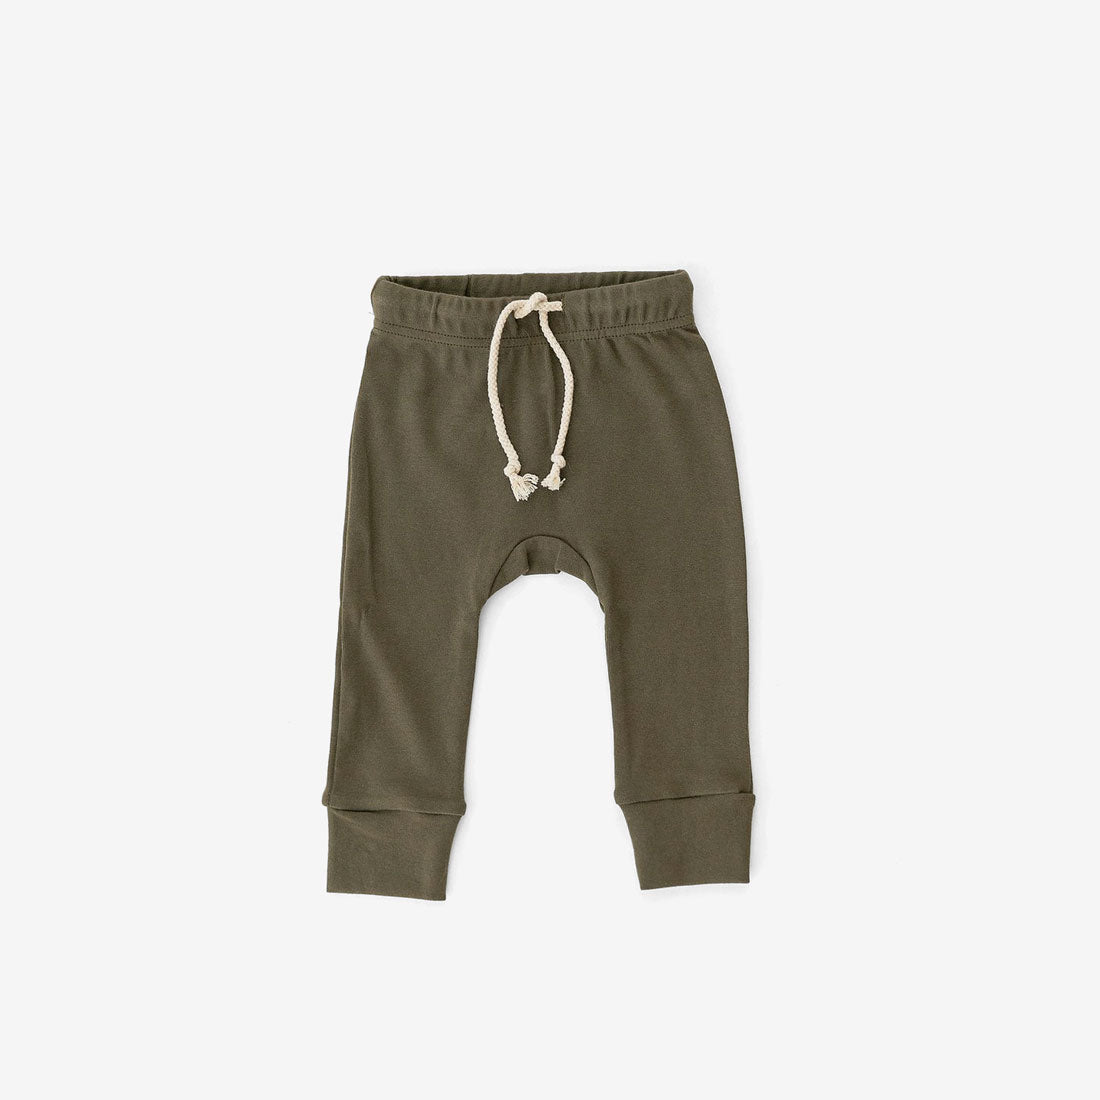 Cotton Jogger Pants - Olive